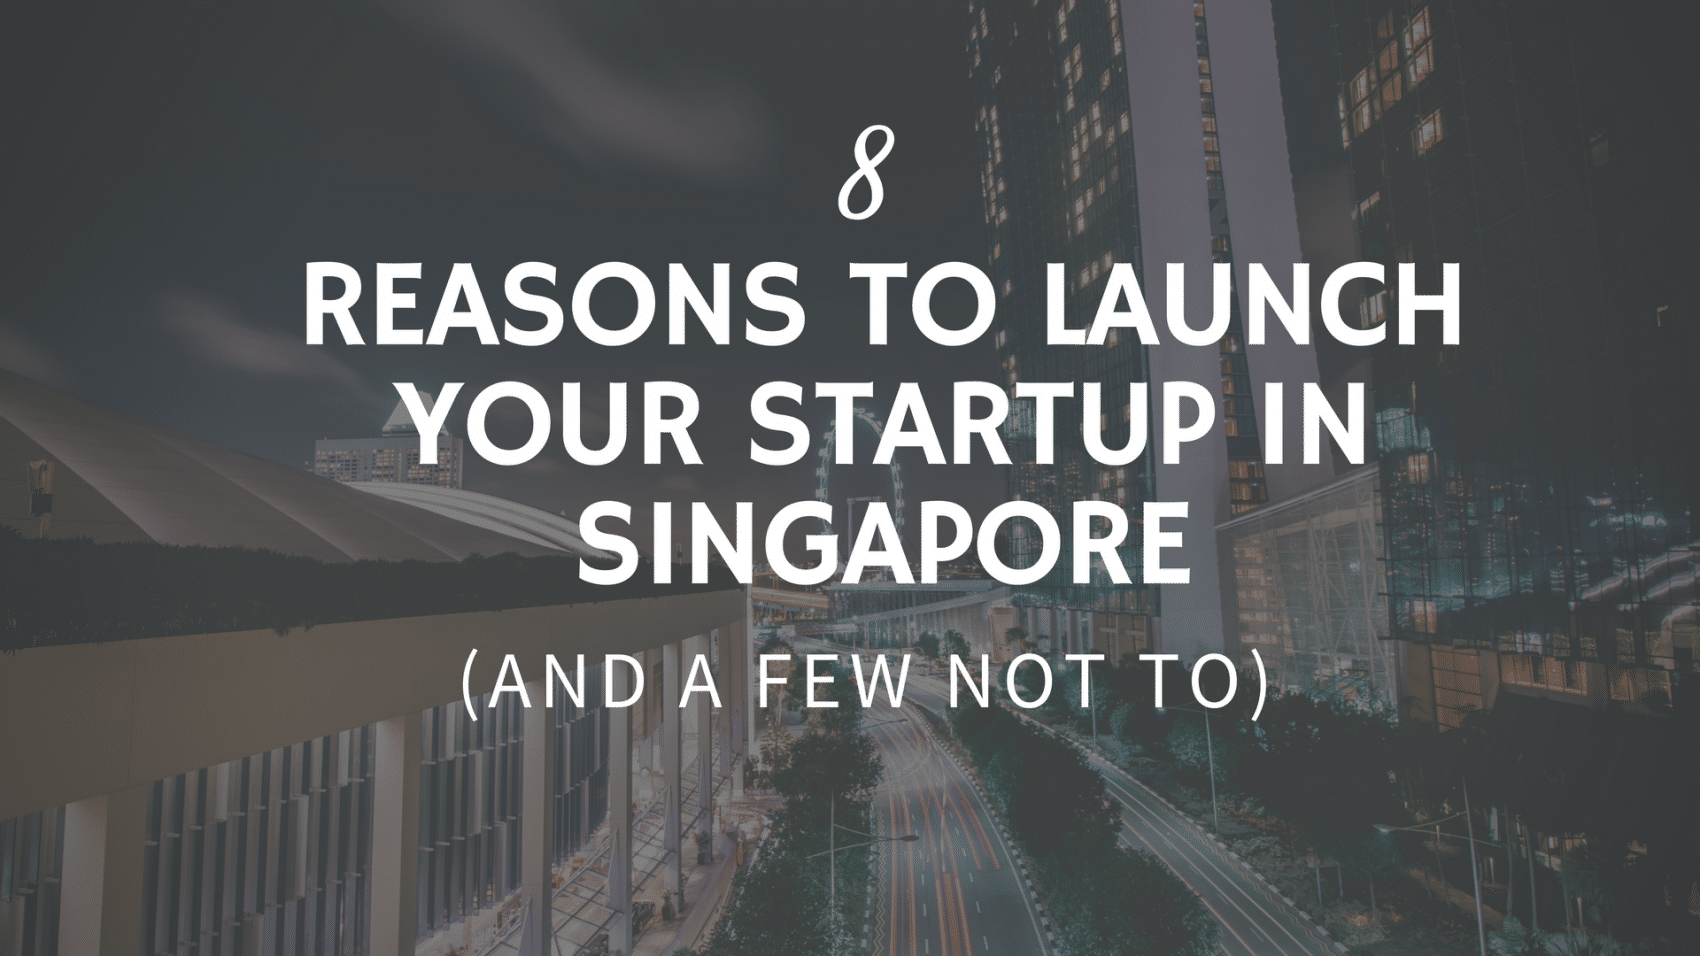 8 Reasons to Launch Your Startup in Singapore (And A Few Not To)